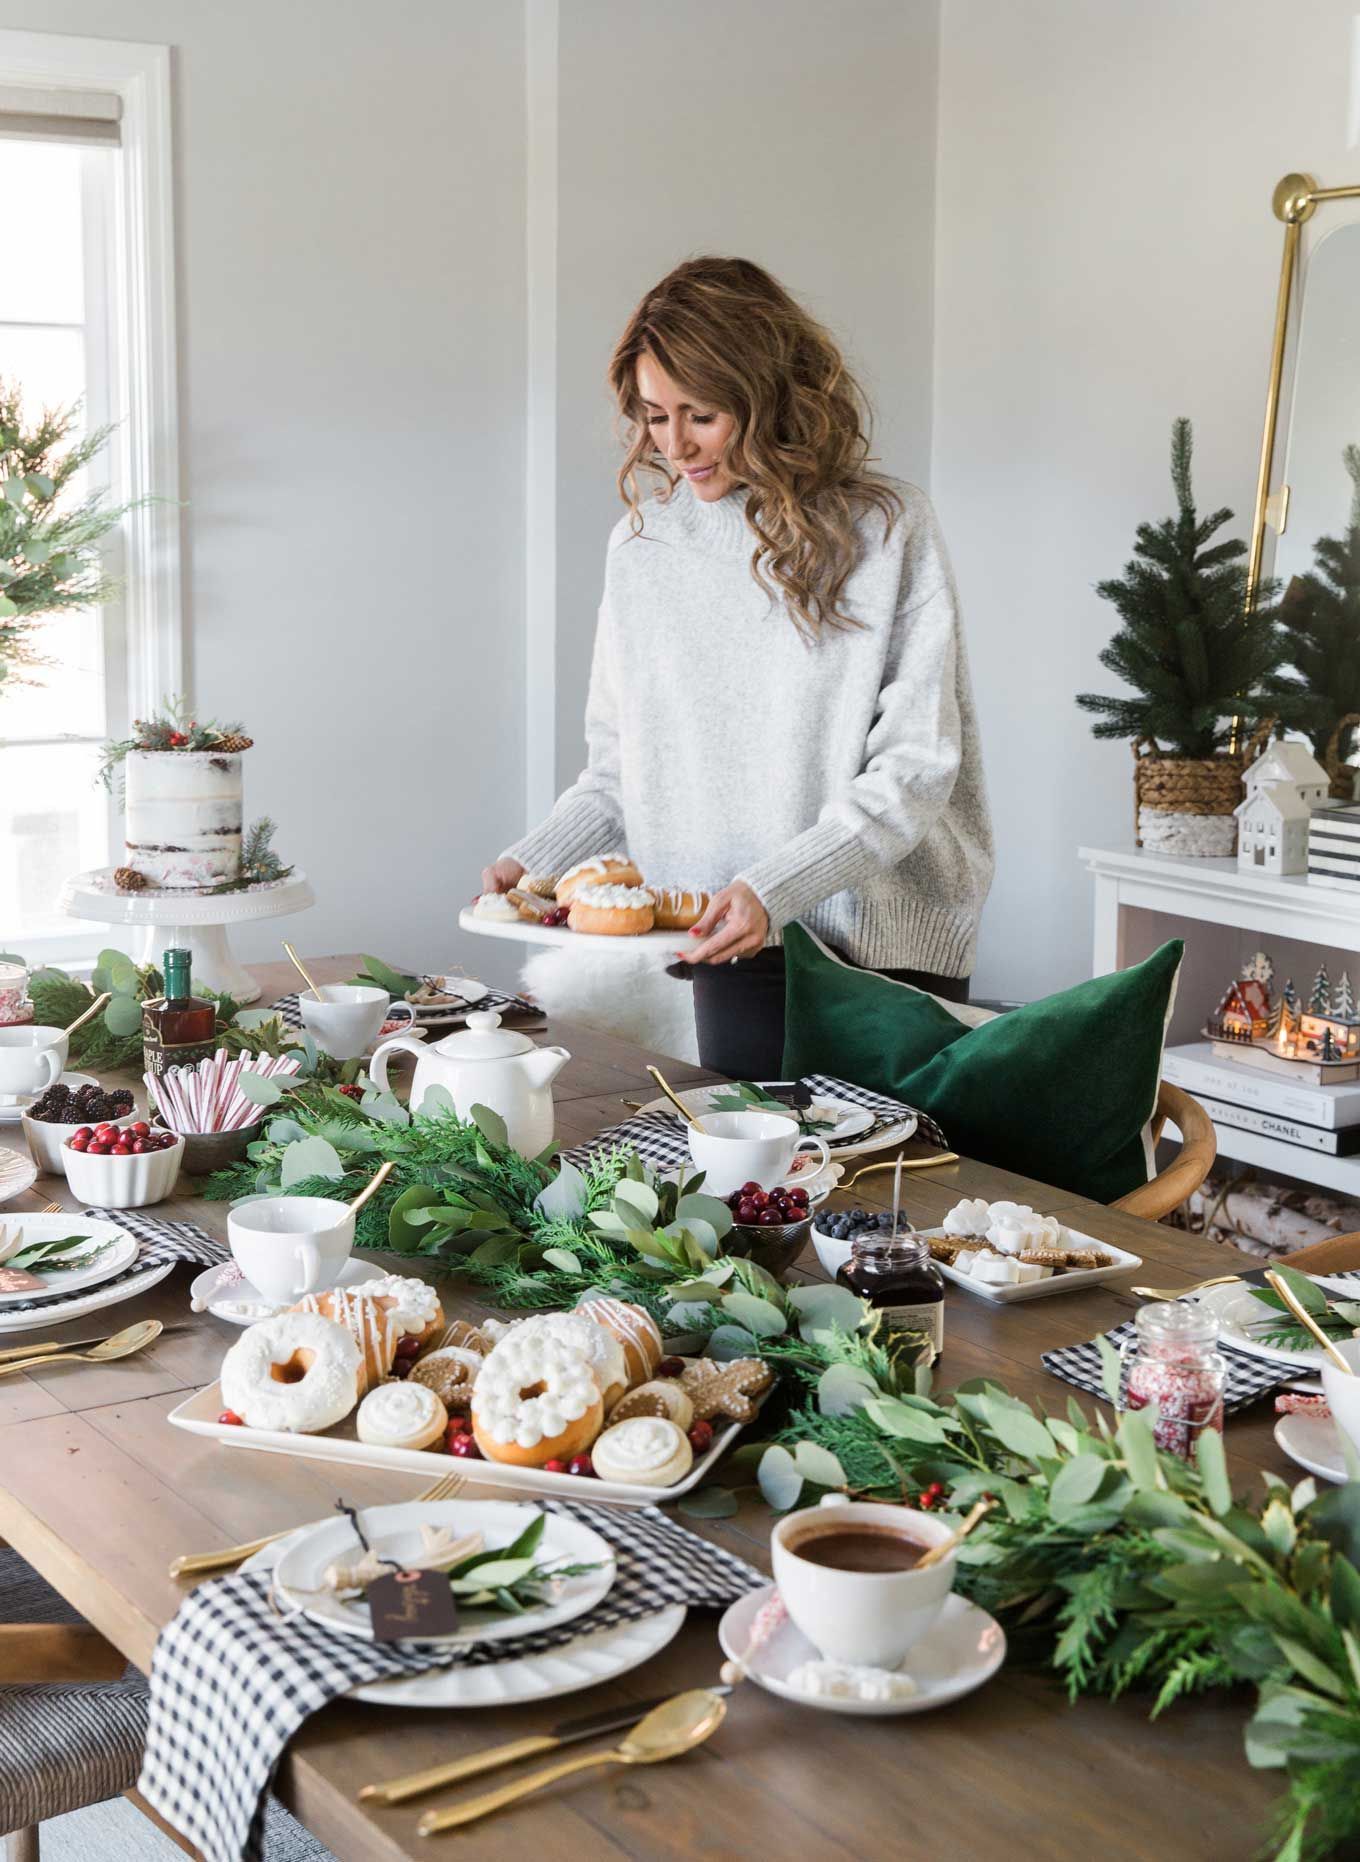 Holiday Brunch In Our New Home Hello Fashion Brunch Table Setting Brunch Decor Christmas Table Decorations